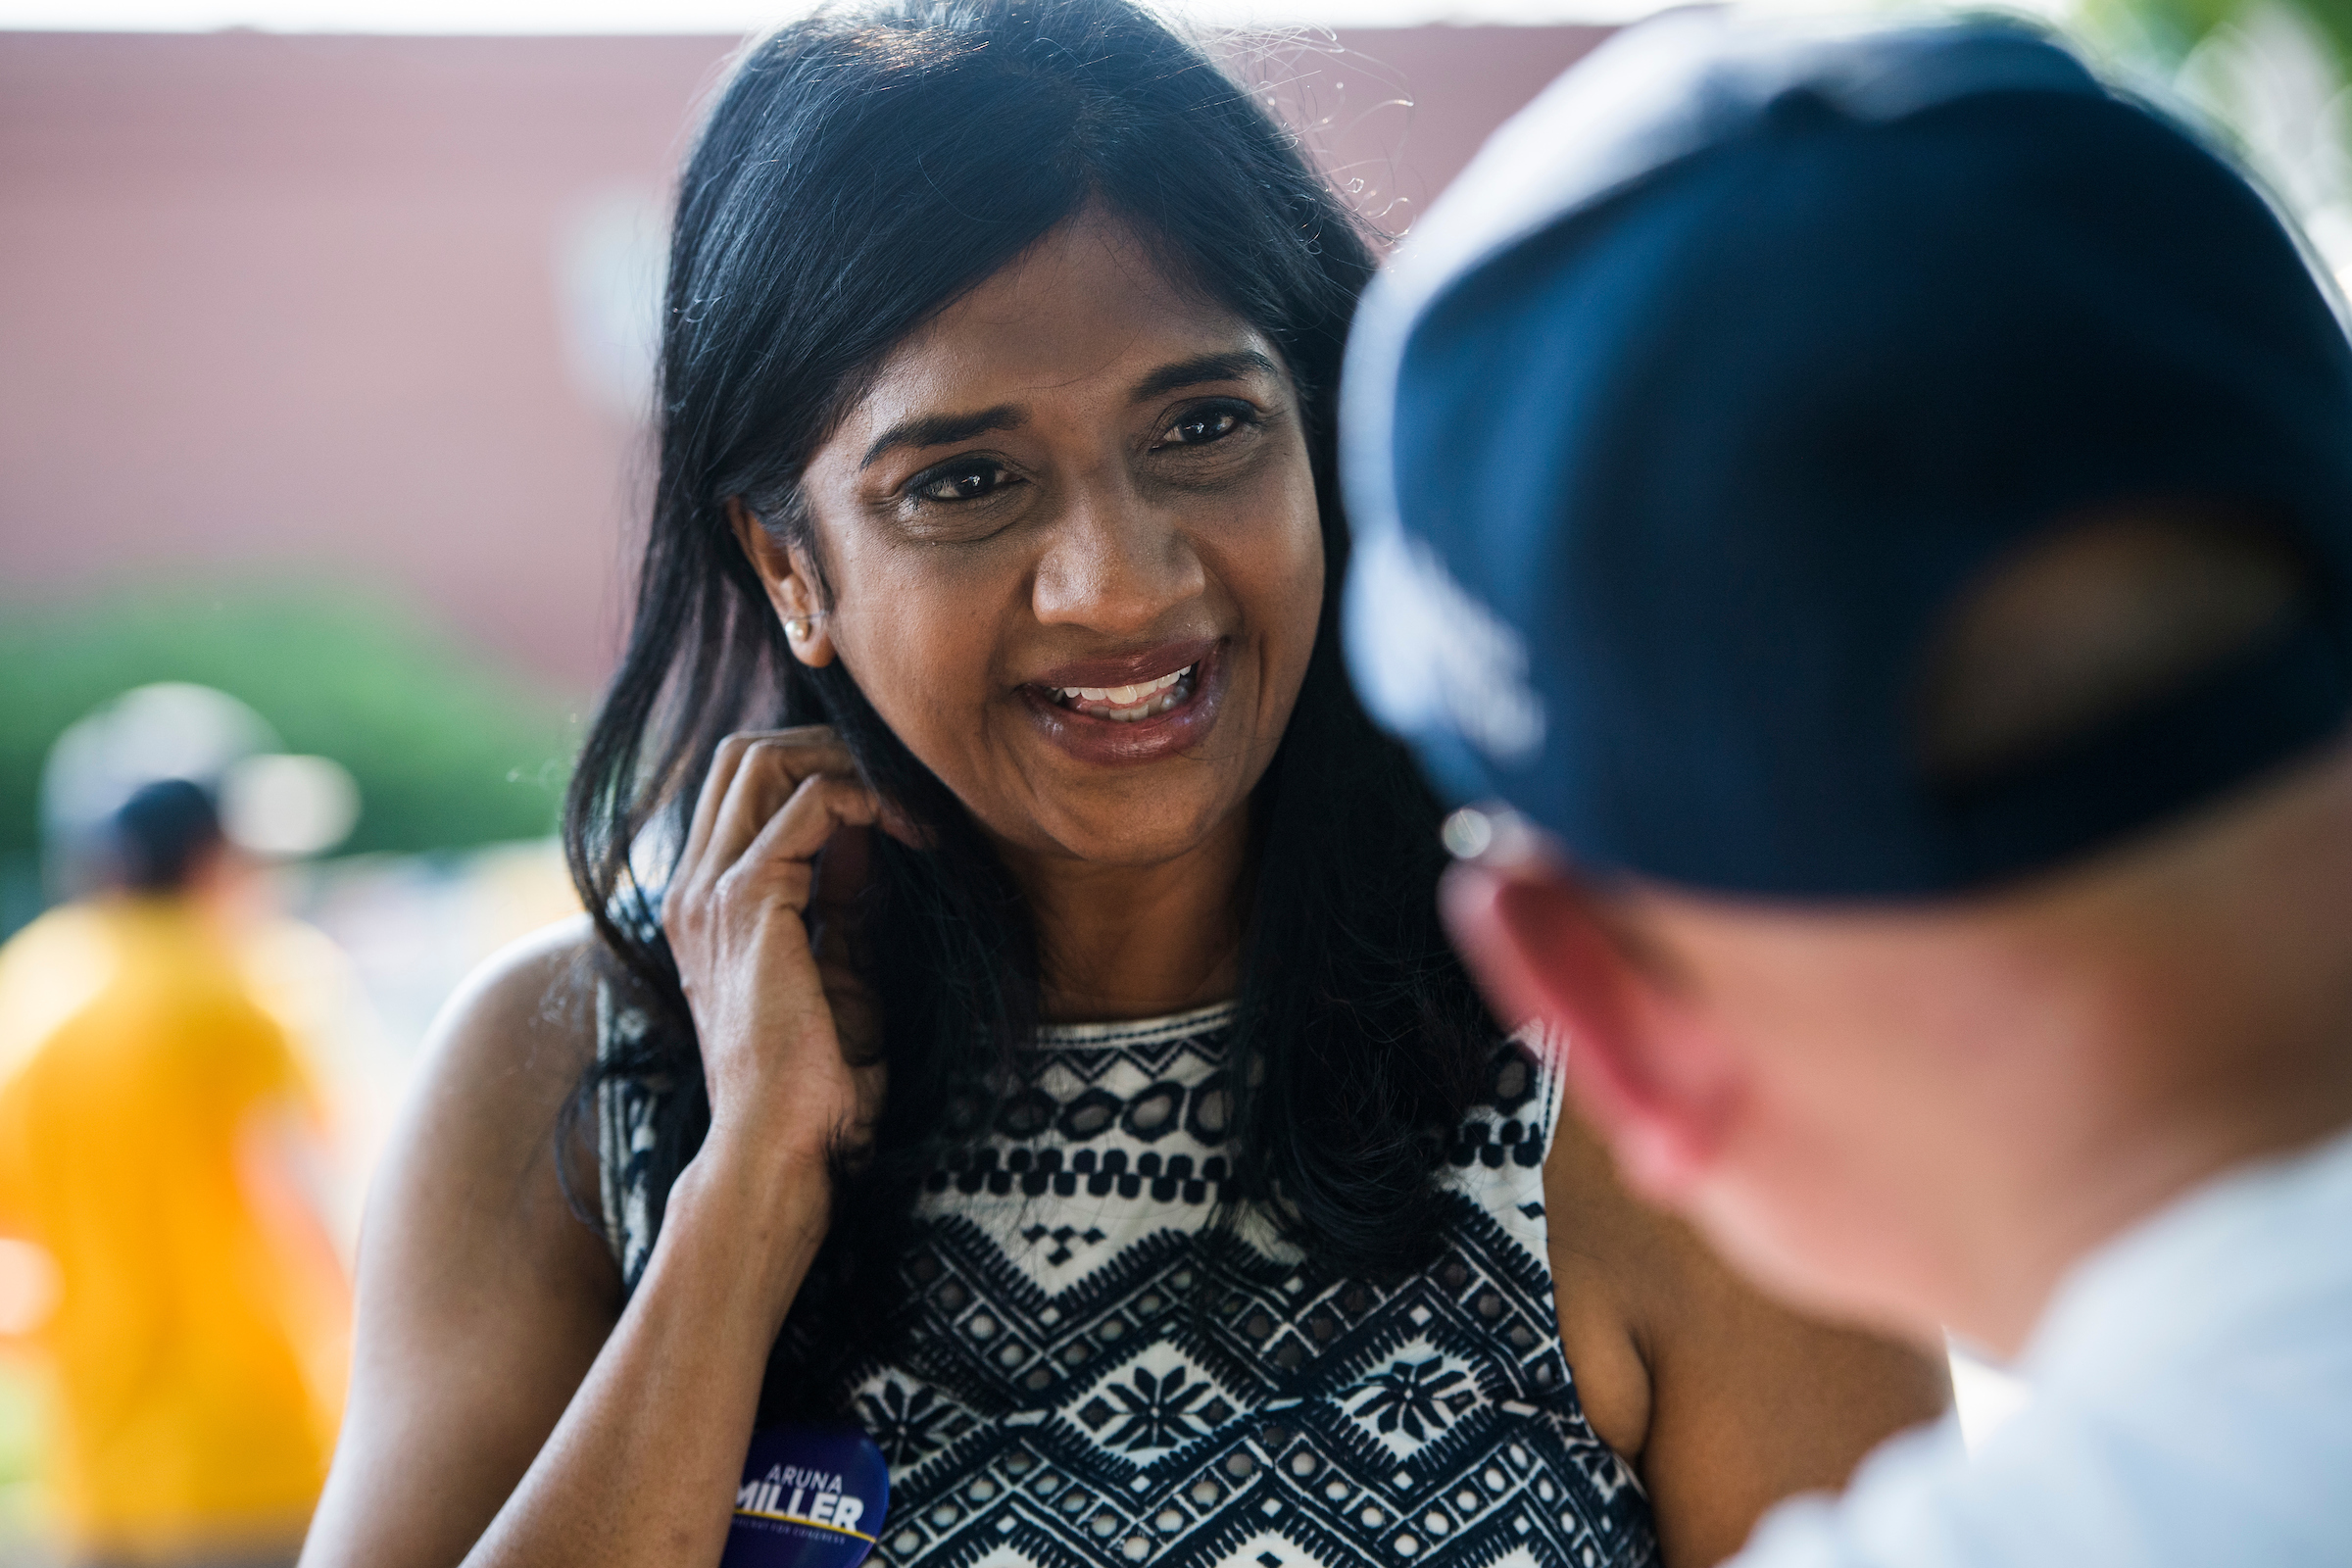 UNITED STATES - JUNE 18: Aruna Miller, who is running for the Democratic nomination in Maryland's 6th Congressional District, talks with citizens during early voting at the Activity Center at Bohrer Park in Gaithersburg, Md., on June 18, 2018. (Photo By Tom Williams/CQ Roll Call)